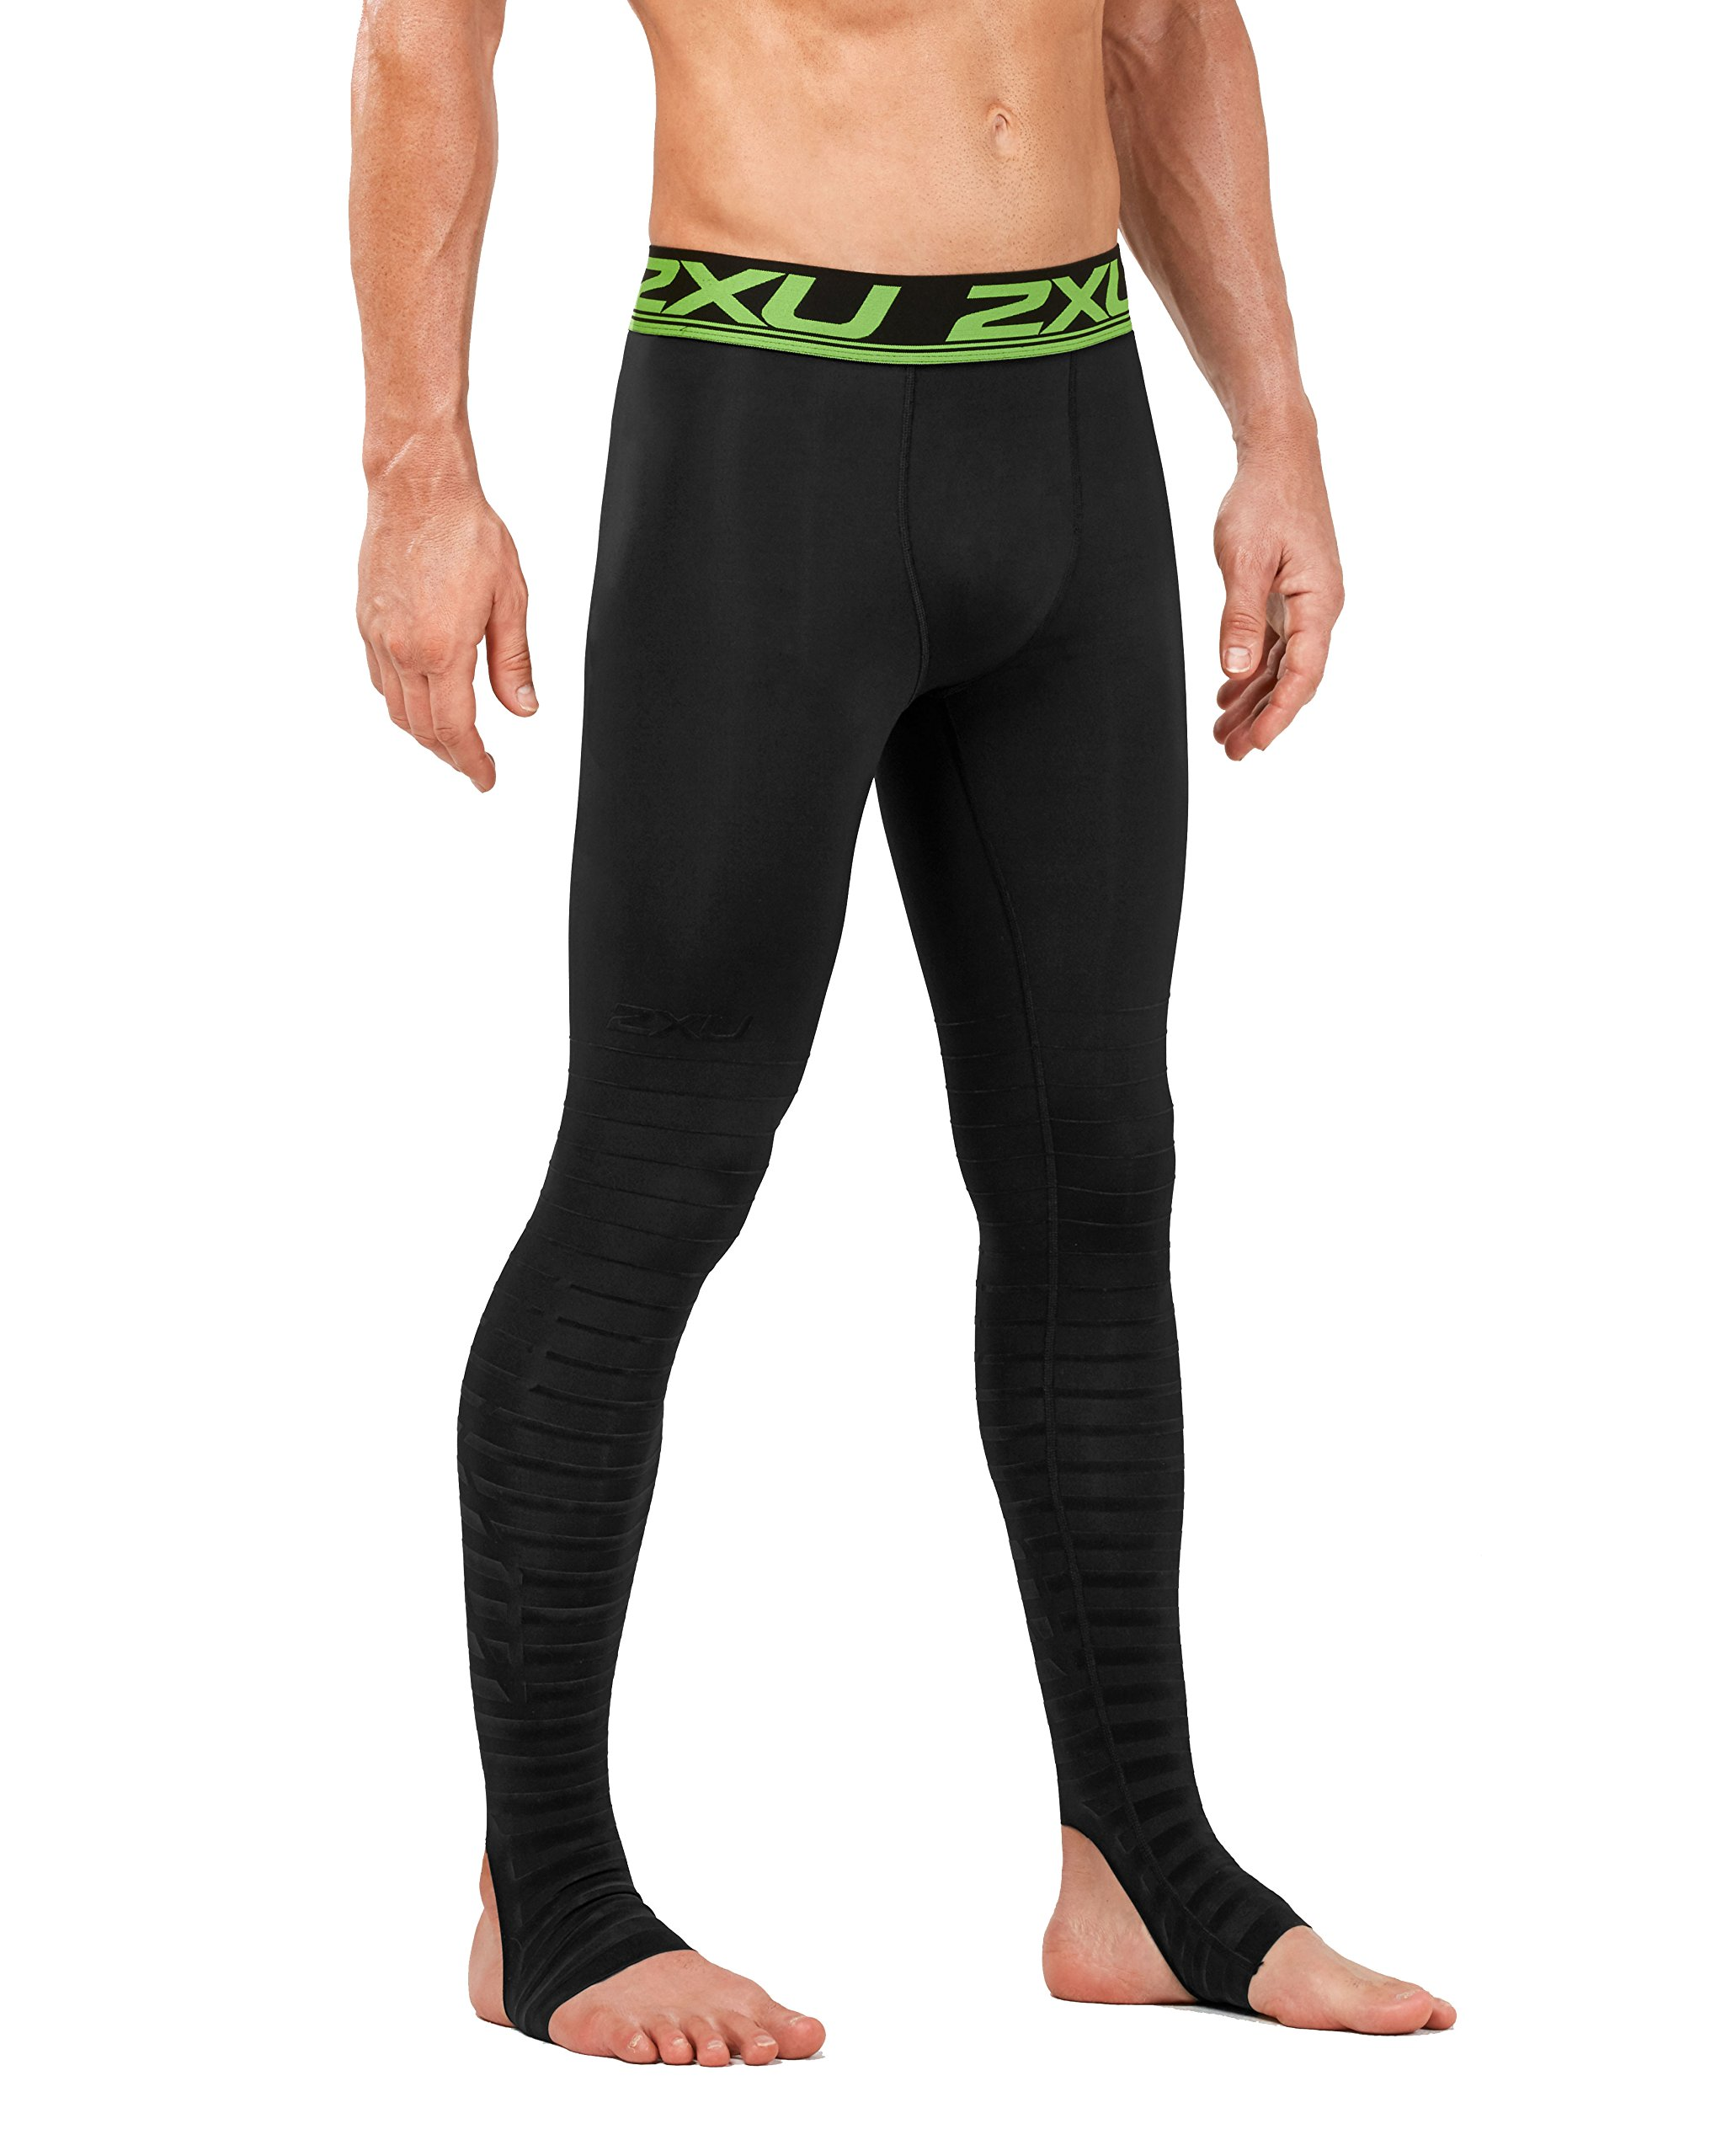 2XU Men's Elite Power Recovery Compression Tights, Black/Nero, X-Small